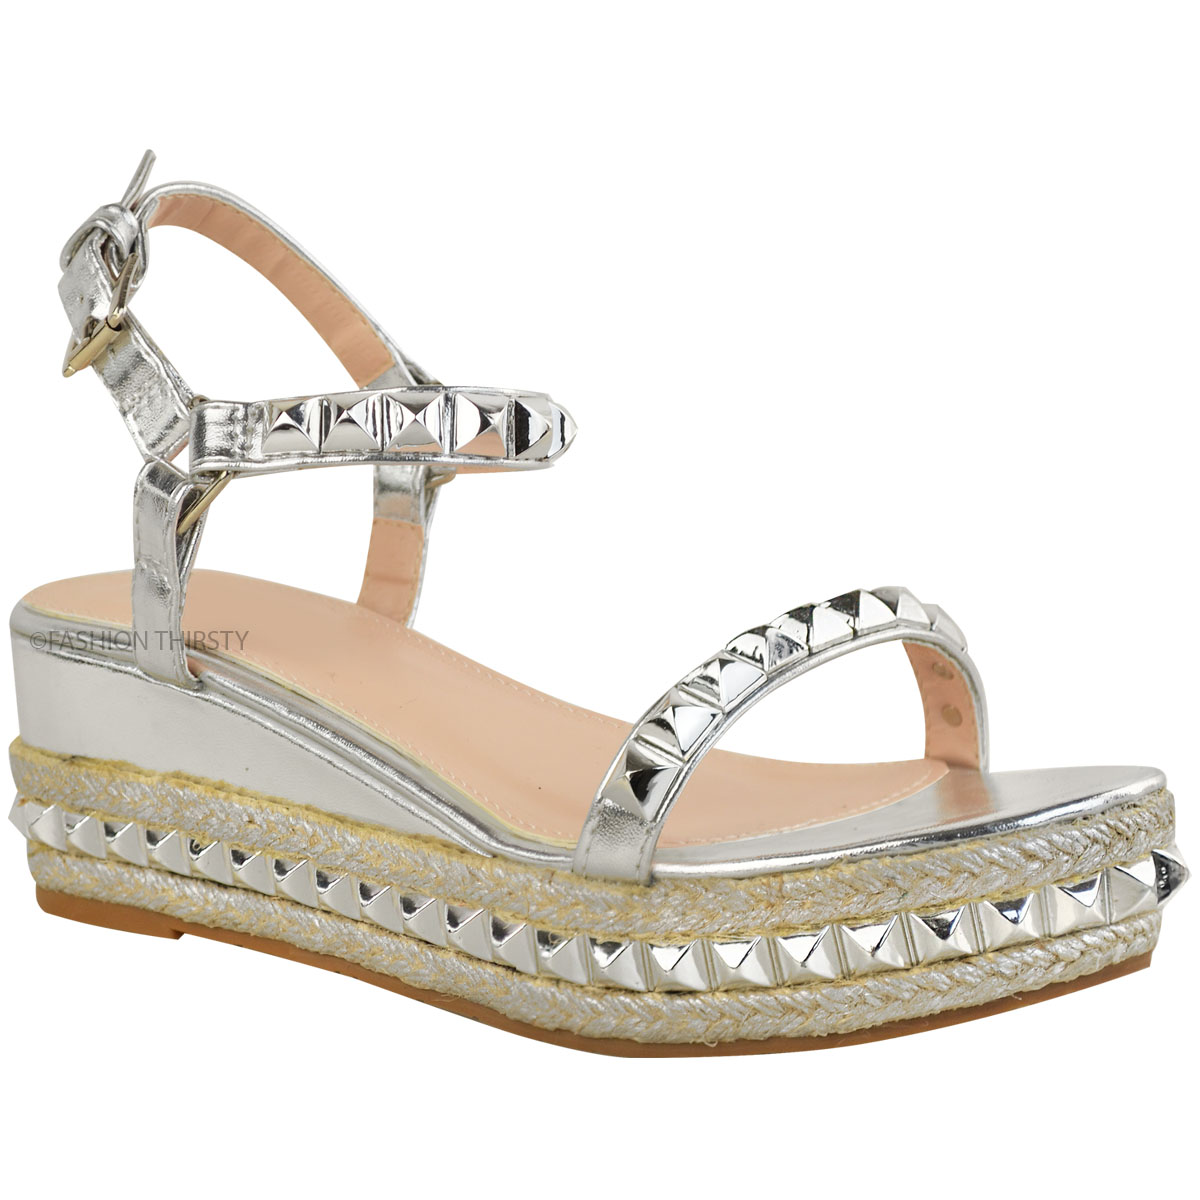 Ladies-Womens-Studded-Low-Wedge-Espadrille-Sandals-Platform-Rose-Gold-Shoes-Size thumbnail 8